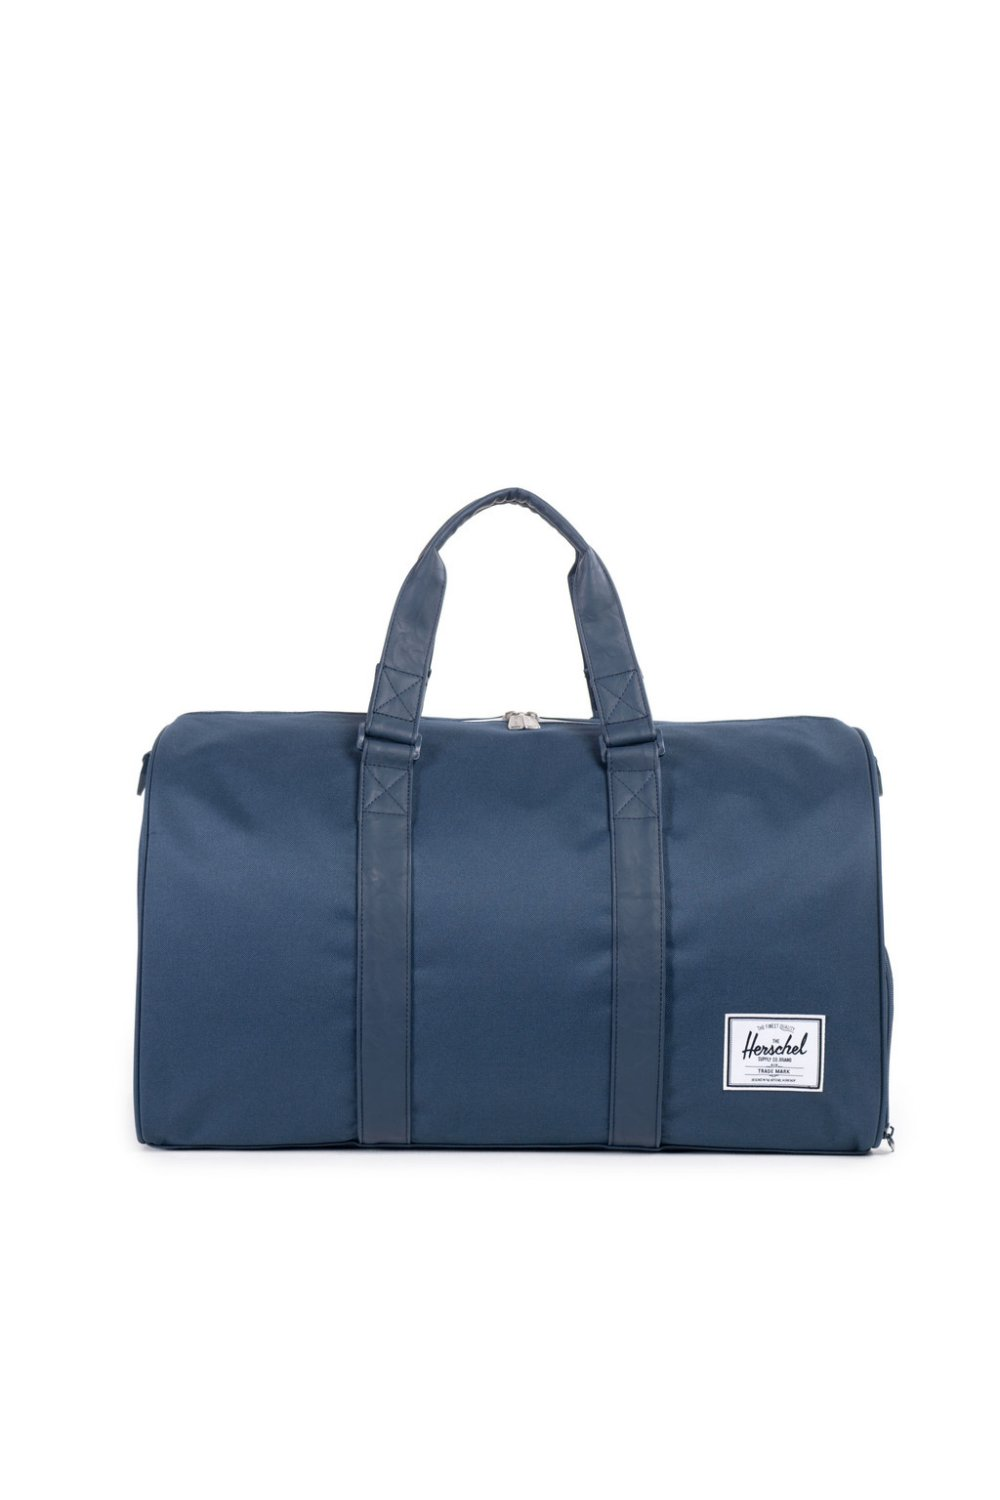 79e96b62bd Herschel Supply Co Novel Duffle Bag (Navy) - Accessories from ...